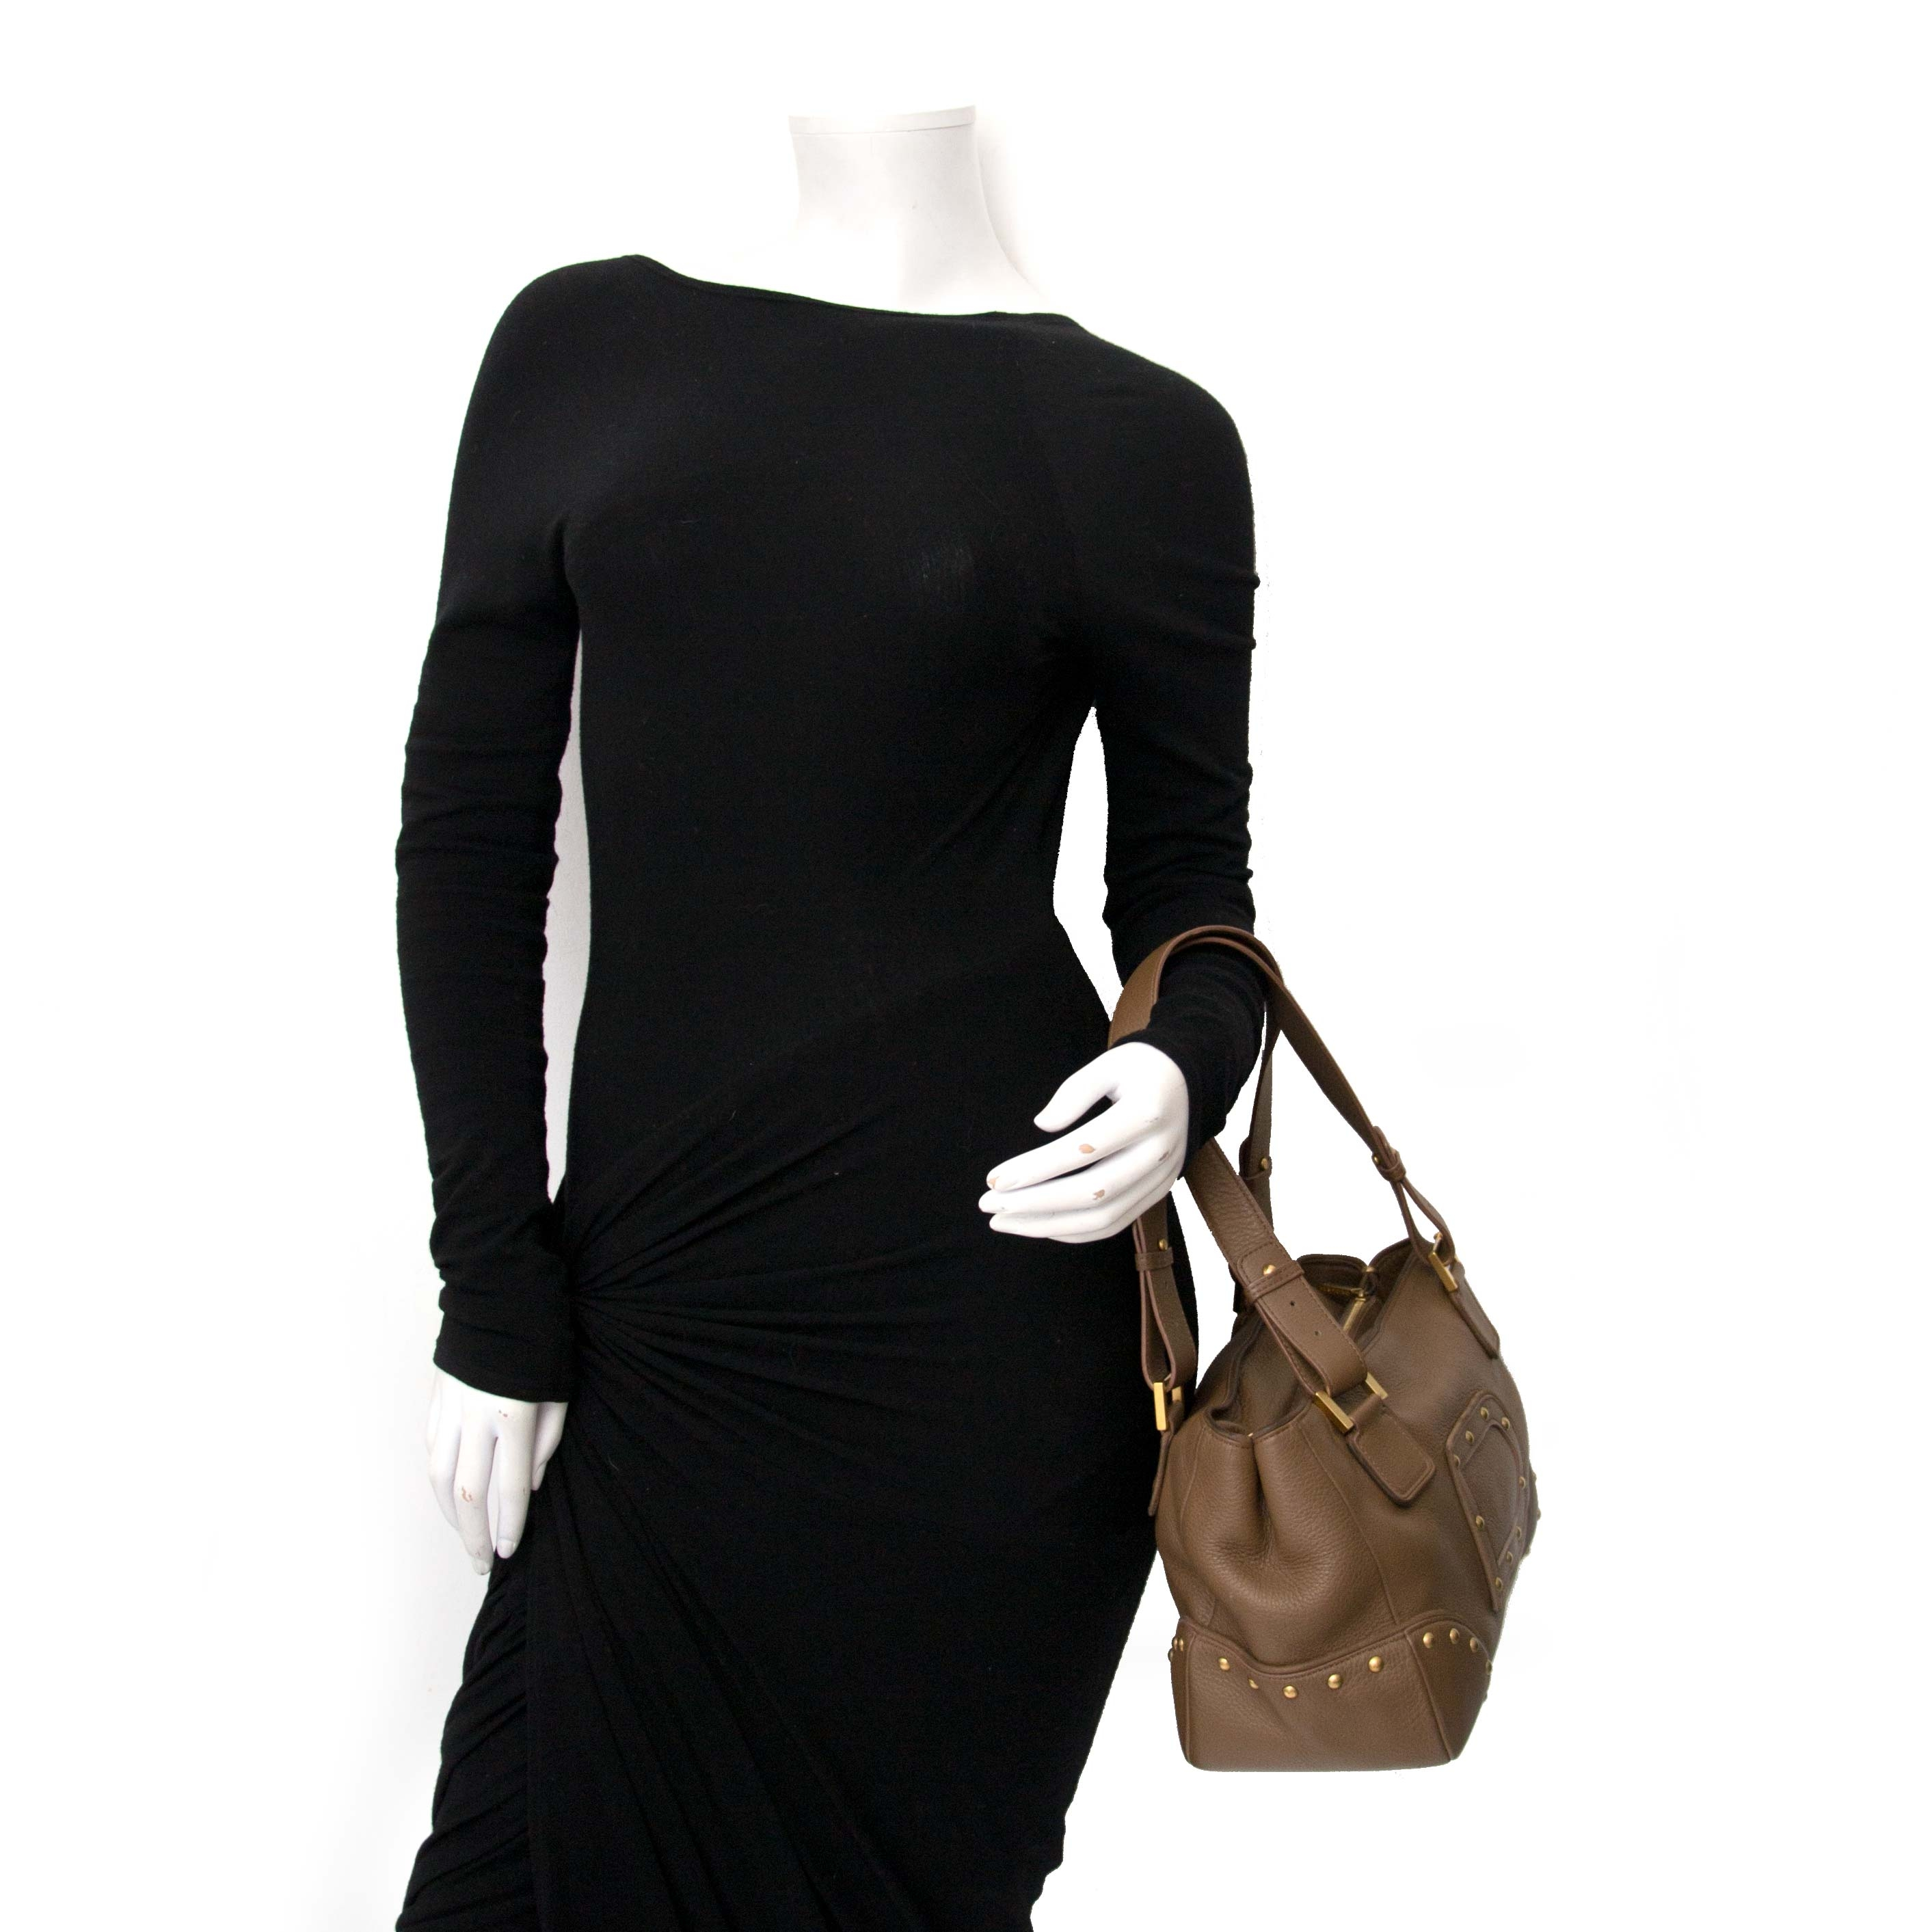 Delvaux Taupe Jaqcues Grained Leather Bag Buy authentic designer Delvaux secondhand bags at Labellov at the best price. Safe and secure shopping. Koop tweedehands authentieke Delvaux tassen bij designer webwinkel labellov.